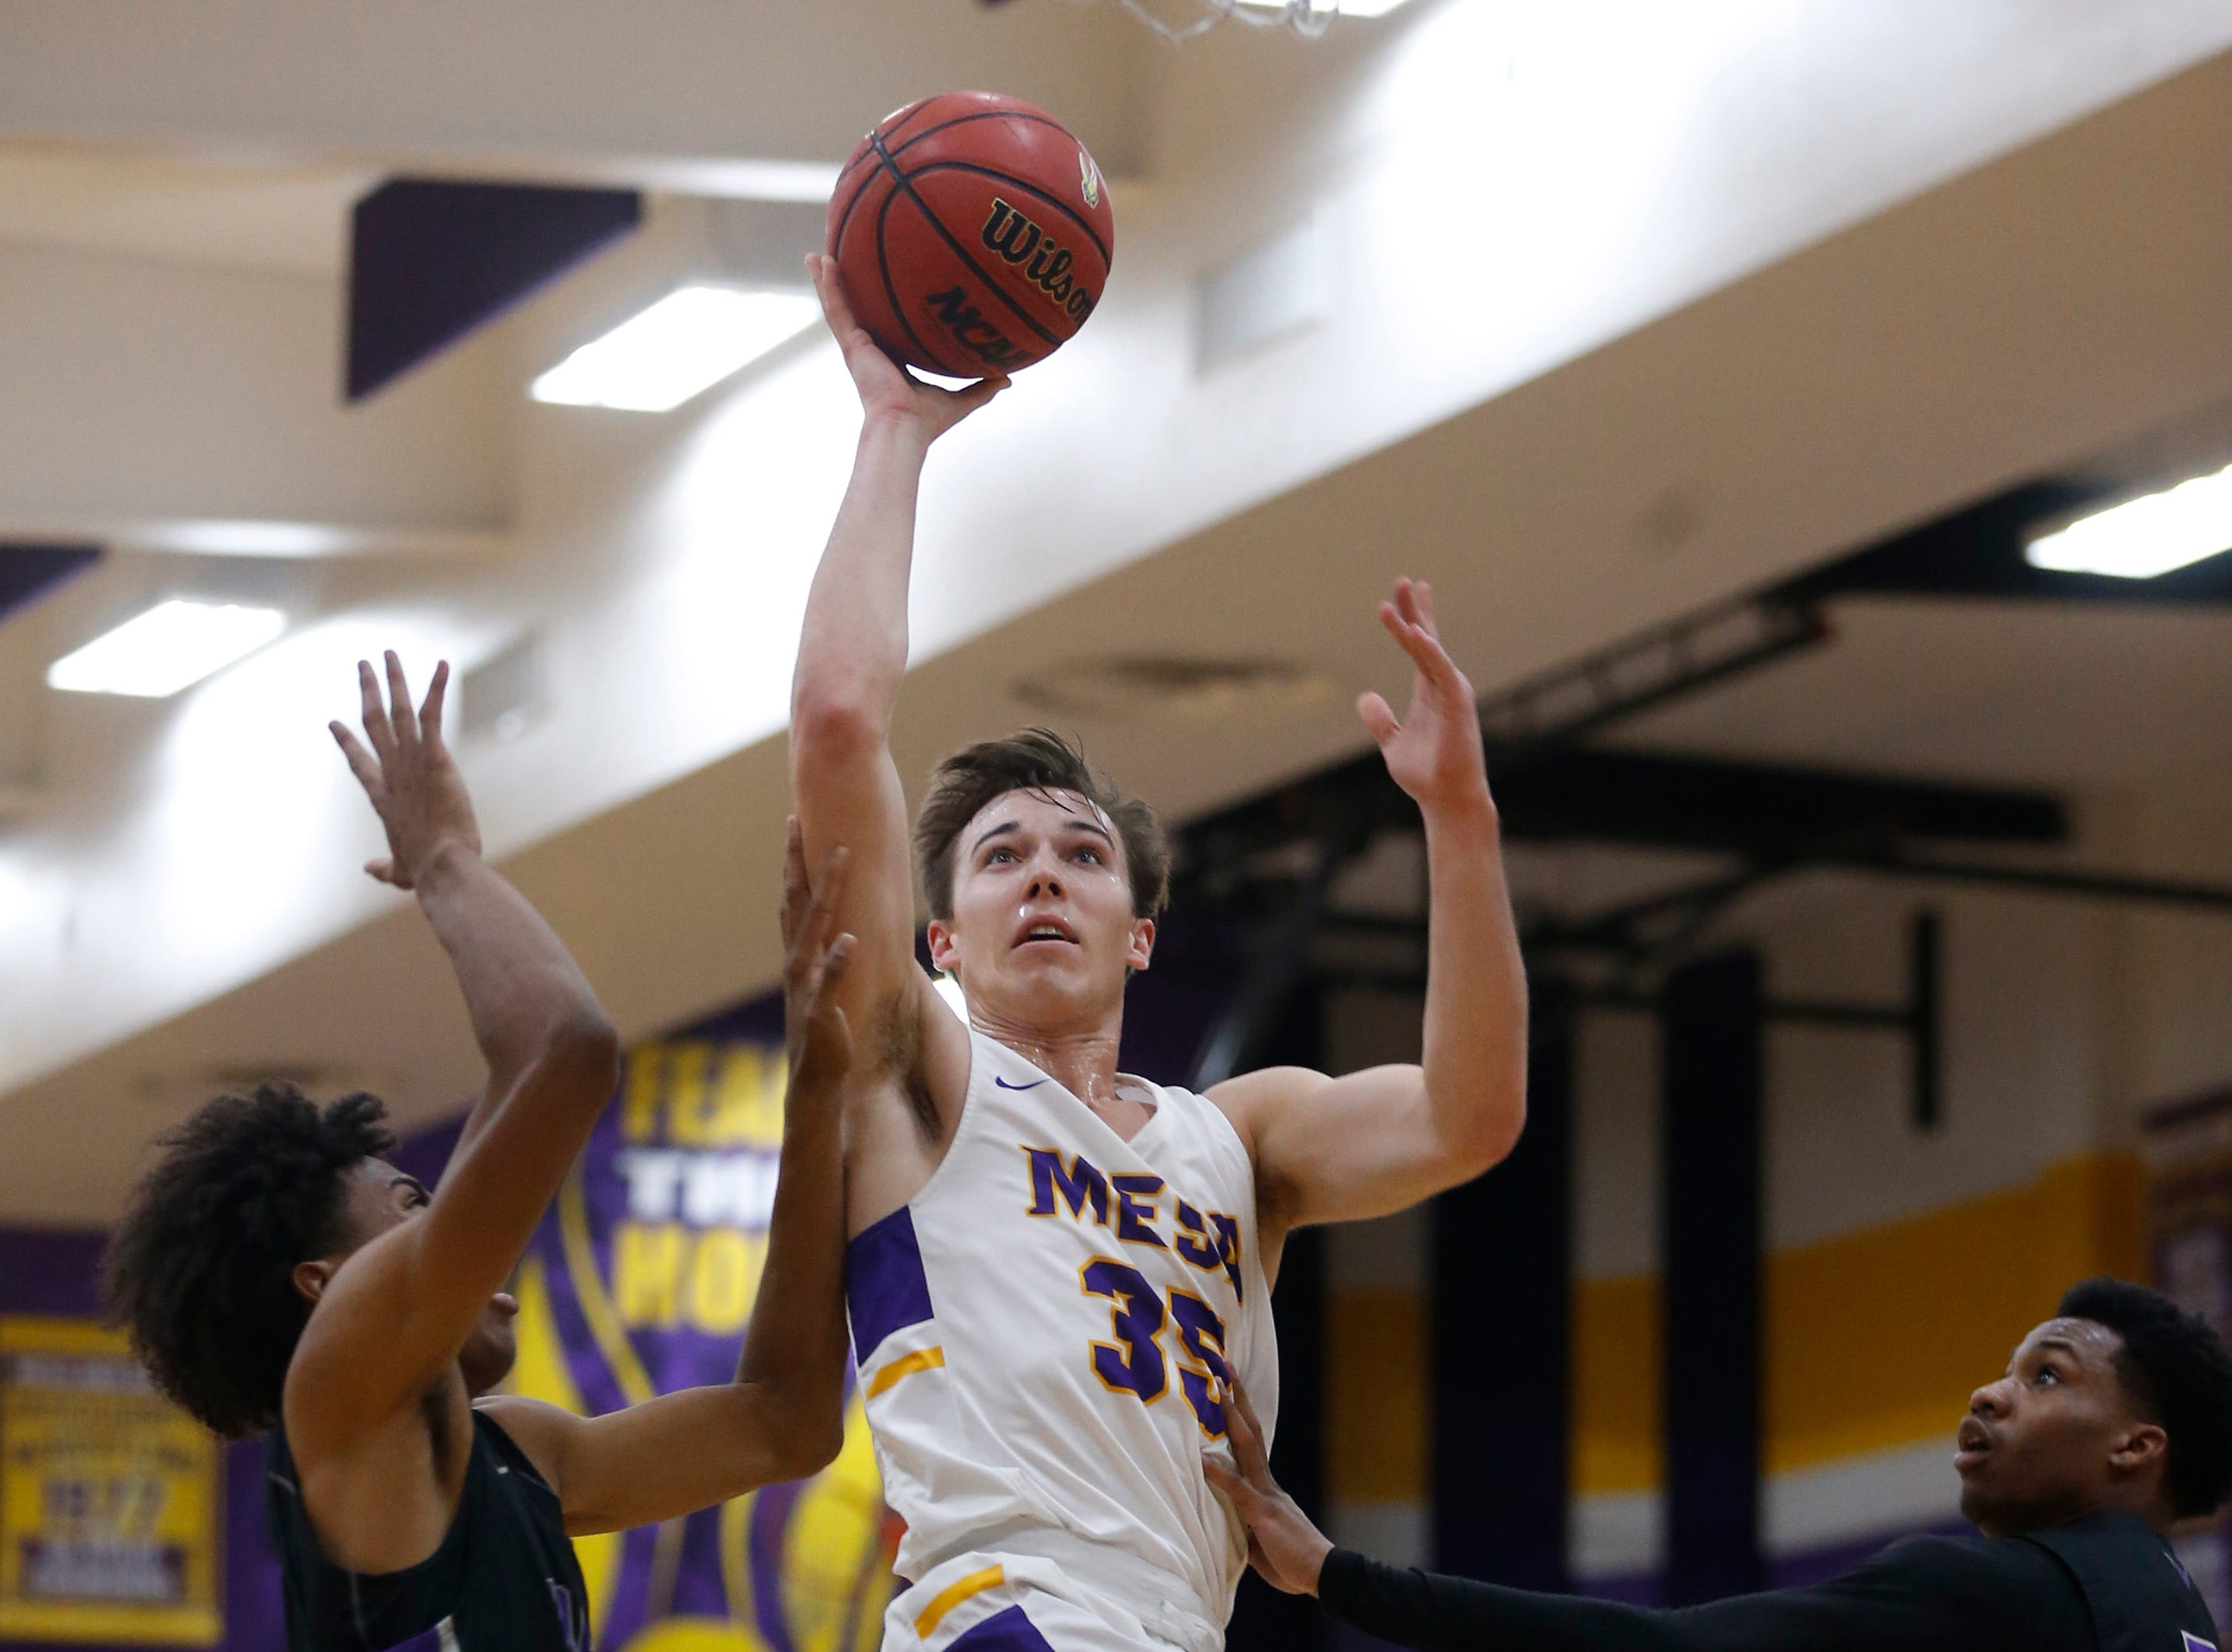 Mesa's Ammon Moritz (35) shoots against Valley Vista during the first half of the boys basketball tournament play-in game at Mesa High School in Mesa, Ariz. on February 8, 2019.